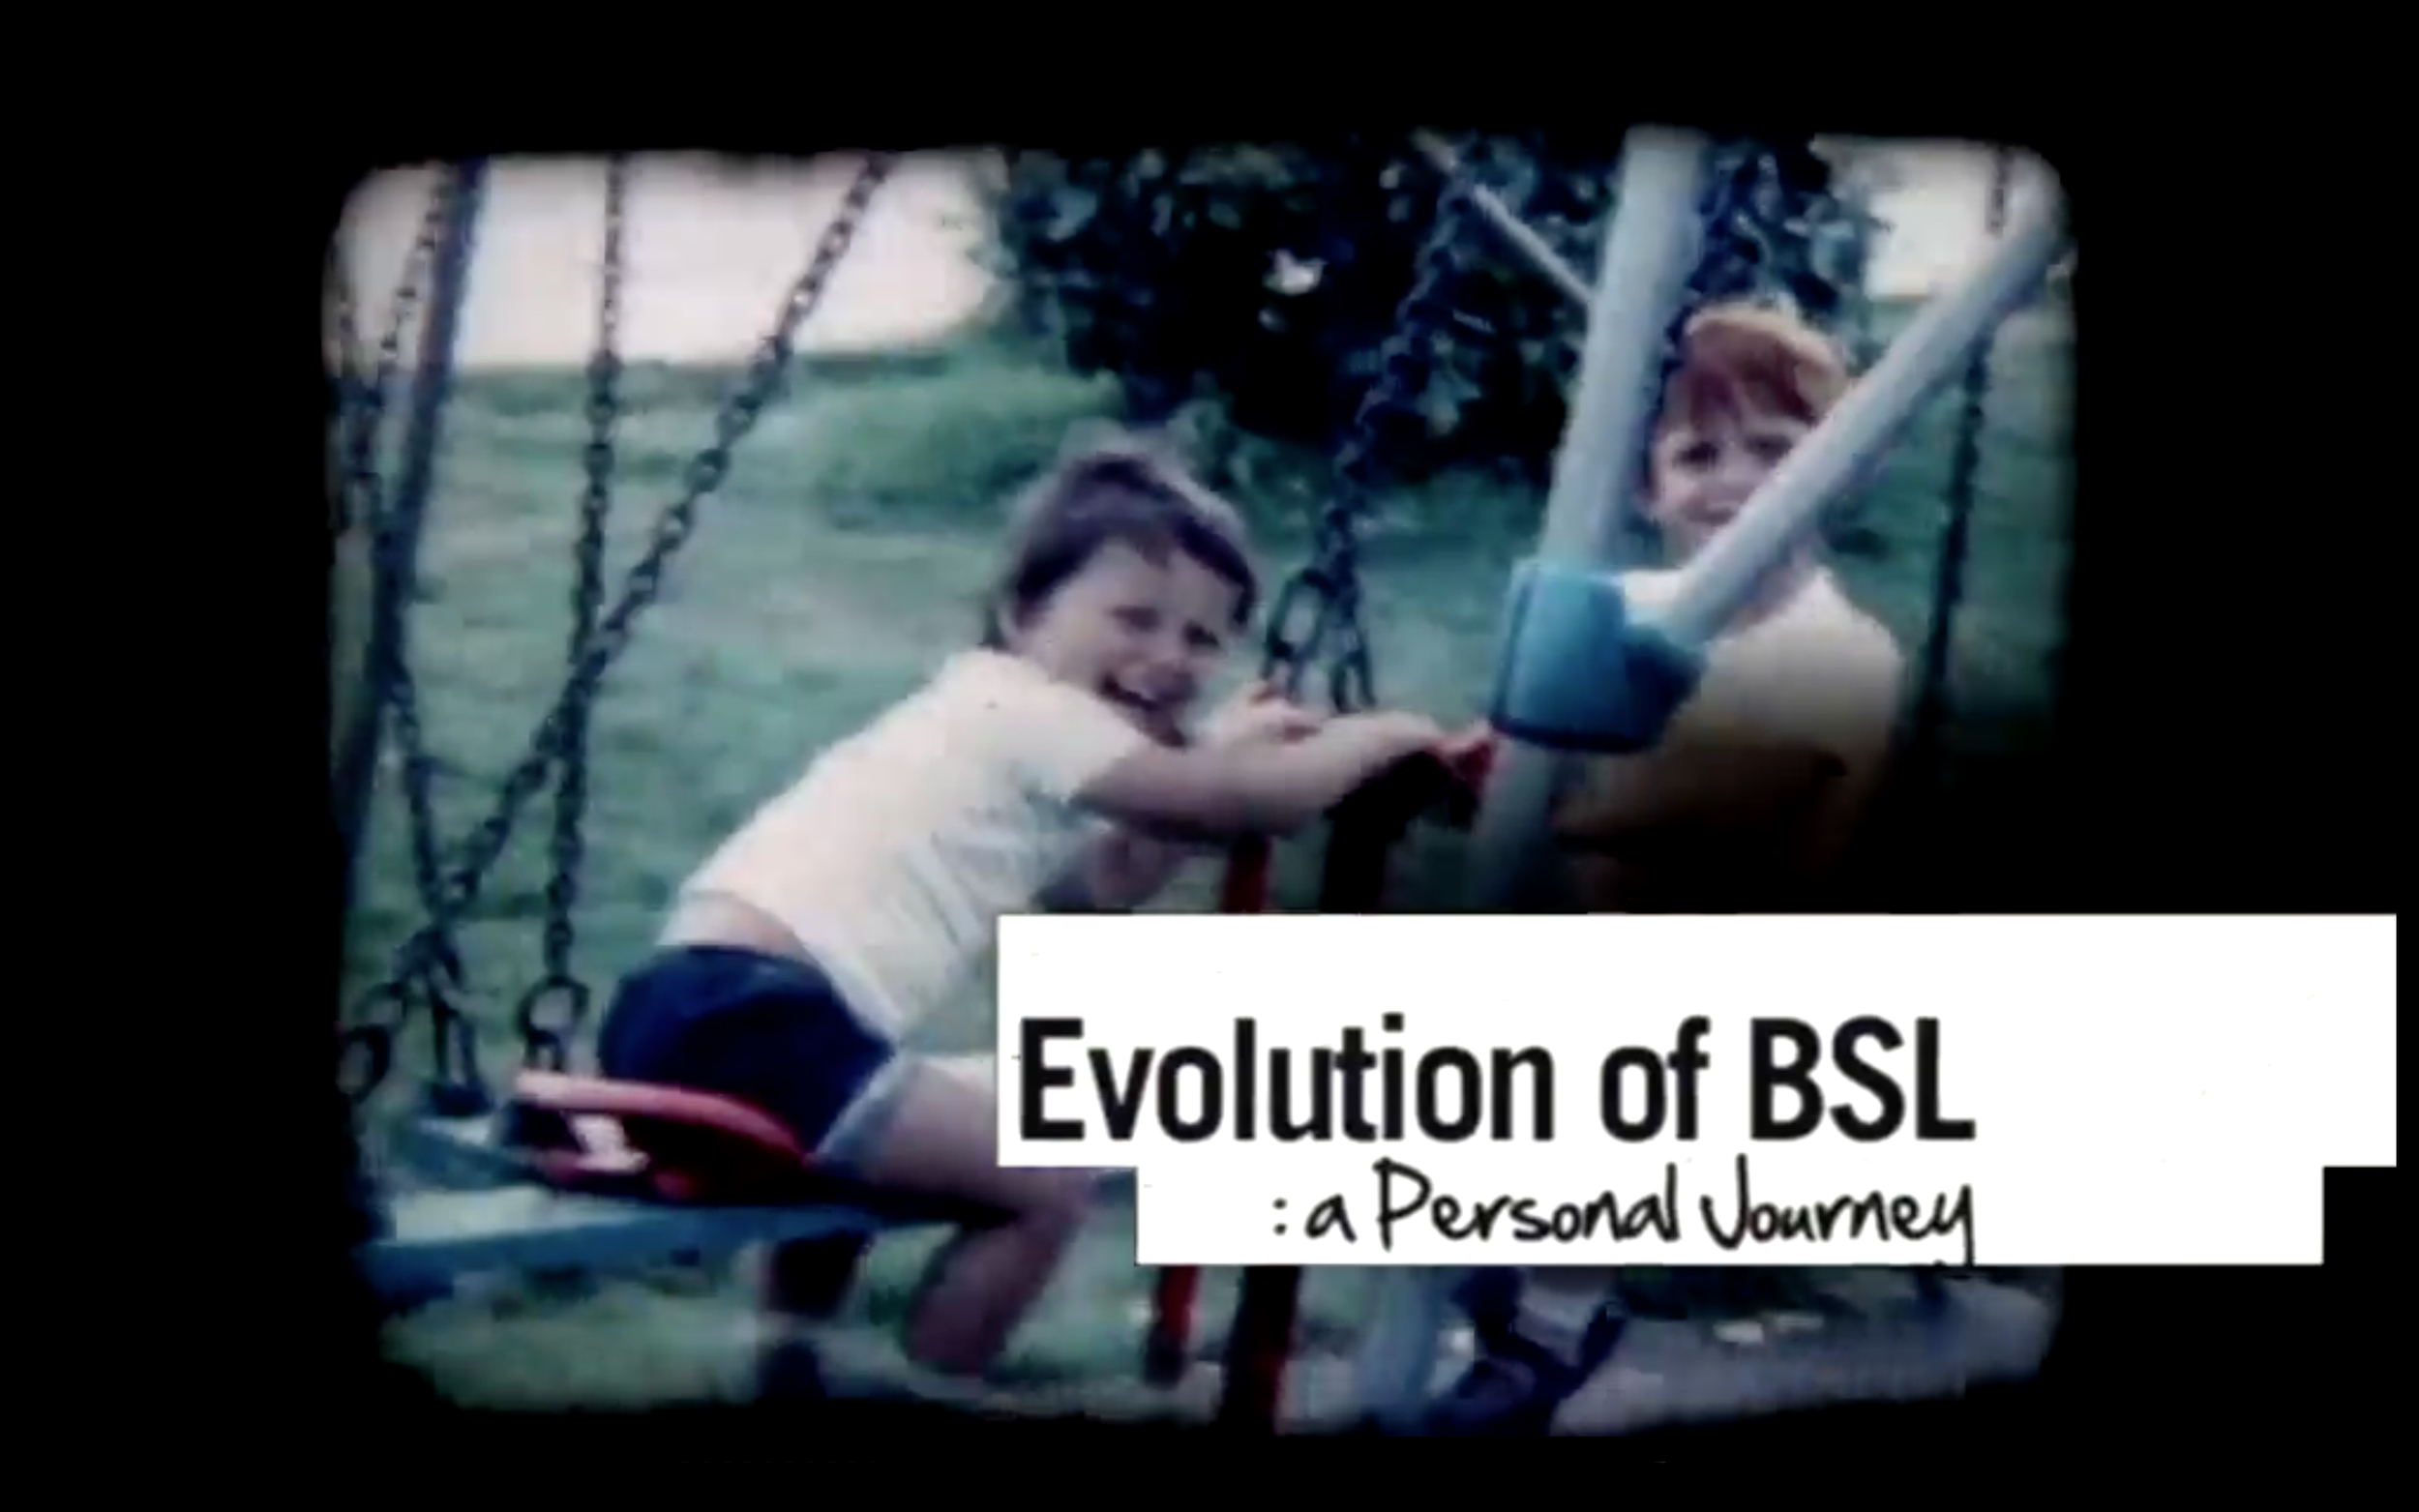 Evolution_of_BSL.jpg